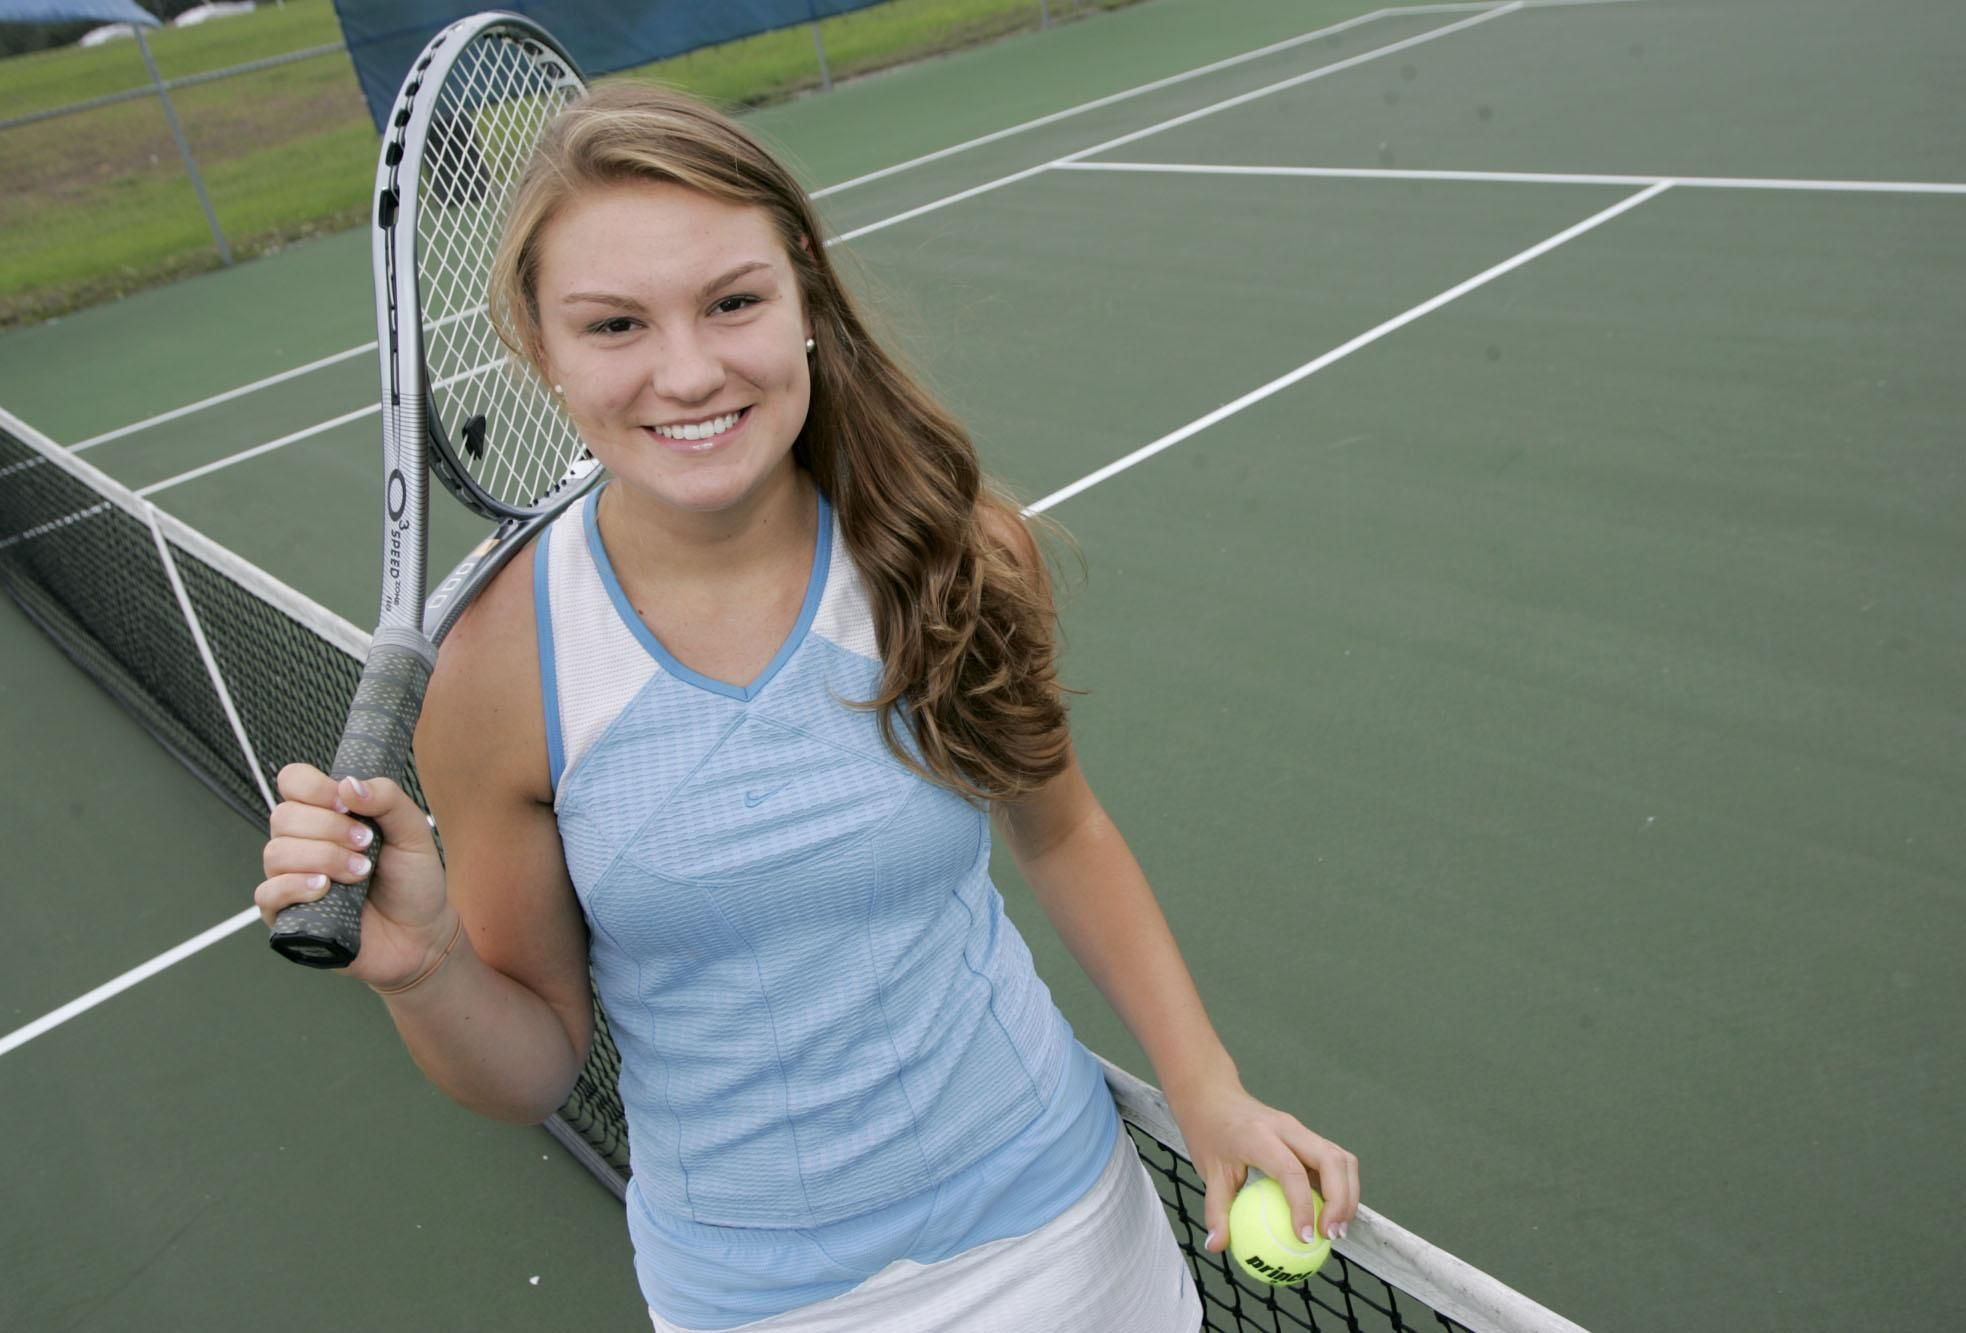 Sebring senior Kaley Walter had a remarkable season at No. 1 singles and doubles and was selected to compete in the prestigious FHSTAC All-Star Tennis Tournament. Walter is the All-Highlands Girls Tennis Player of the Year.